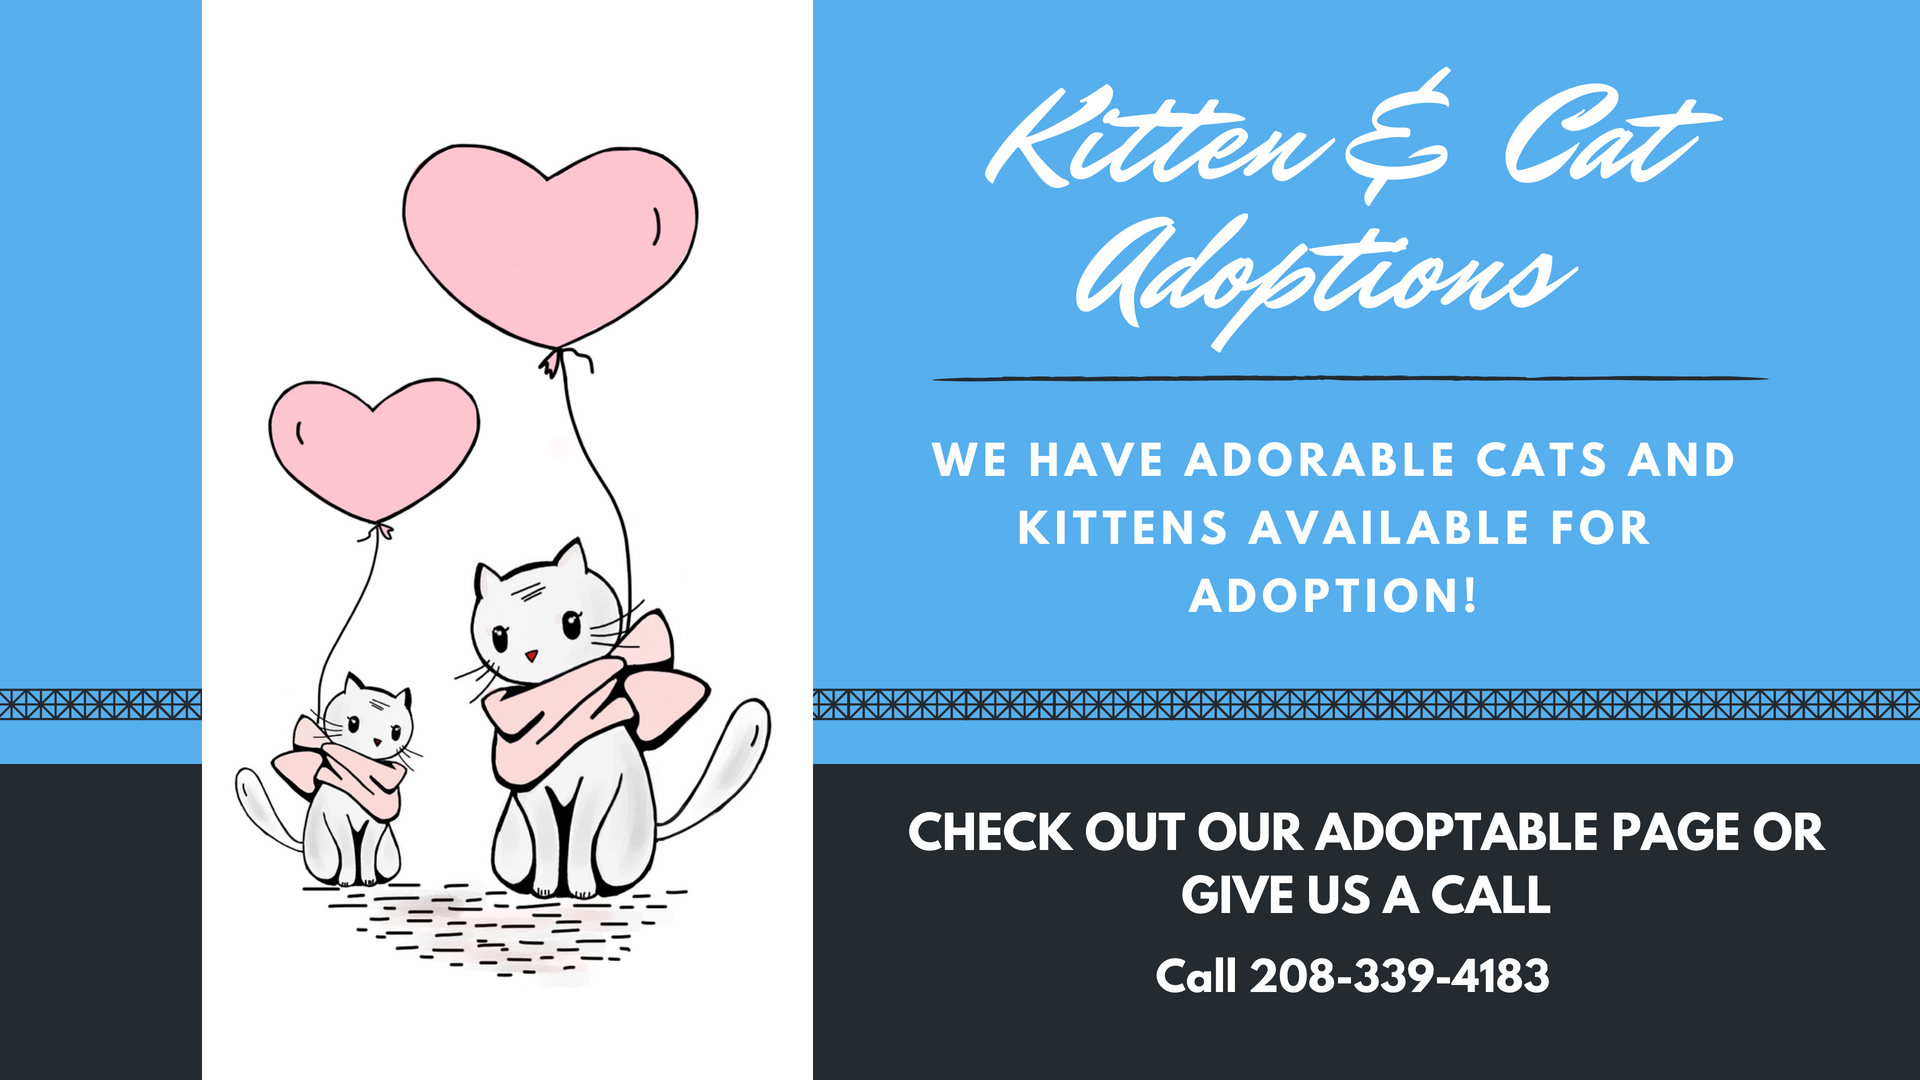 Click image to view adoptable cats & kittens